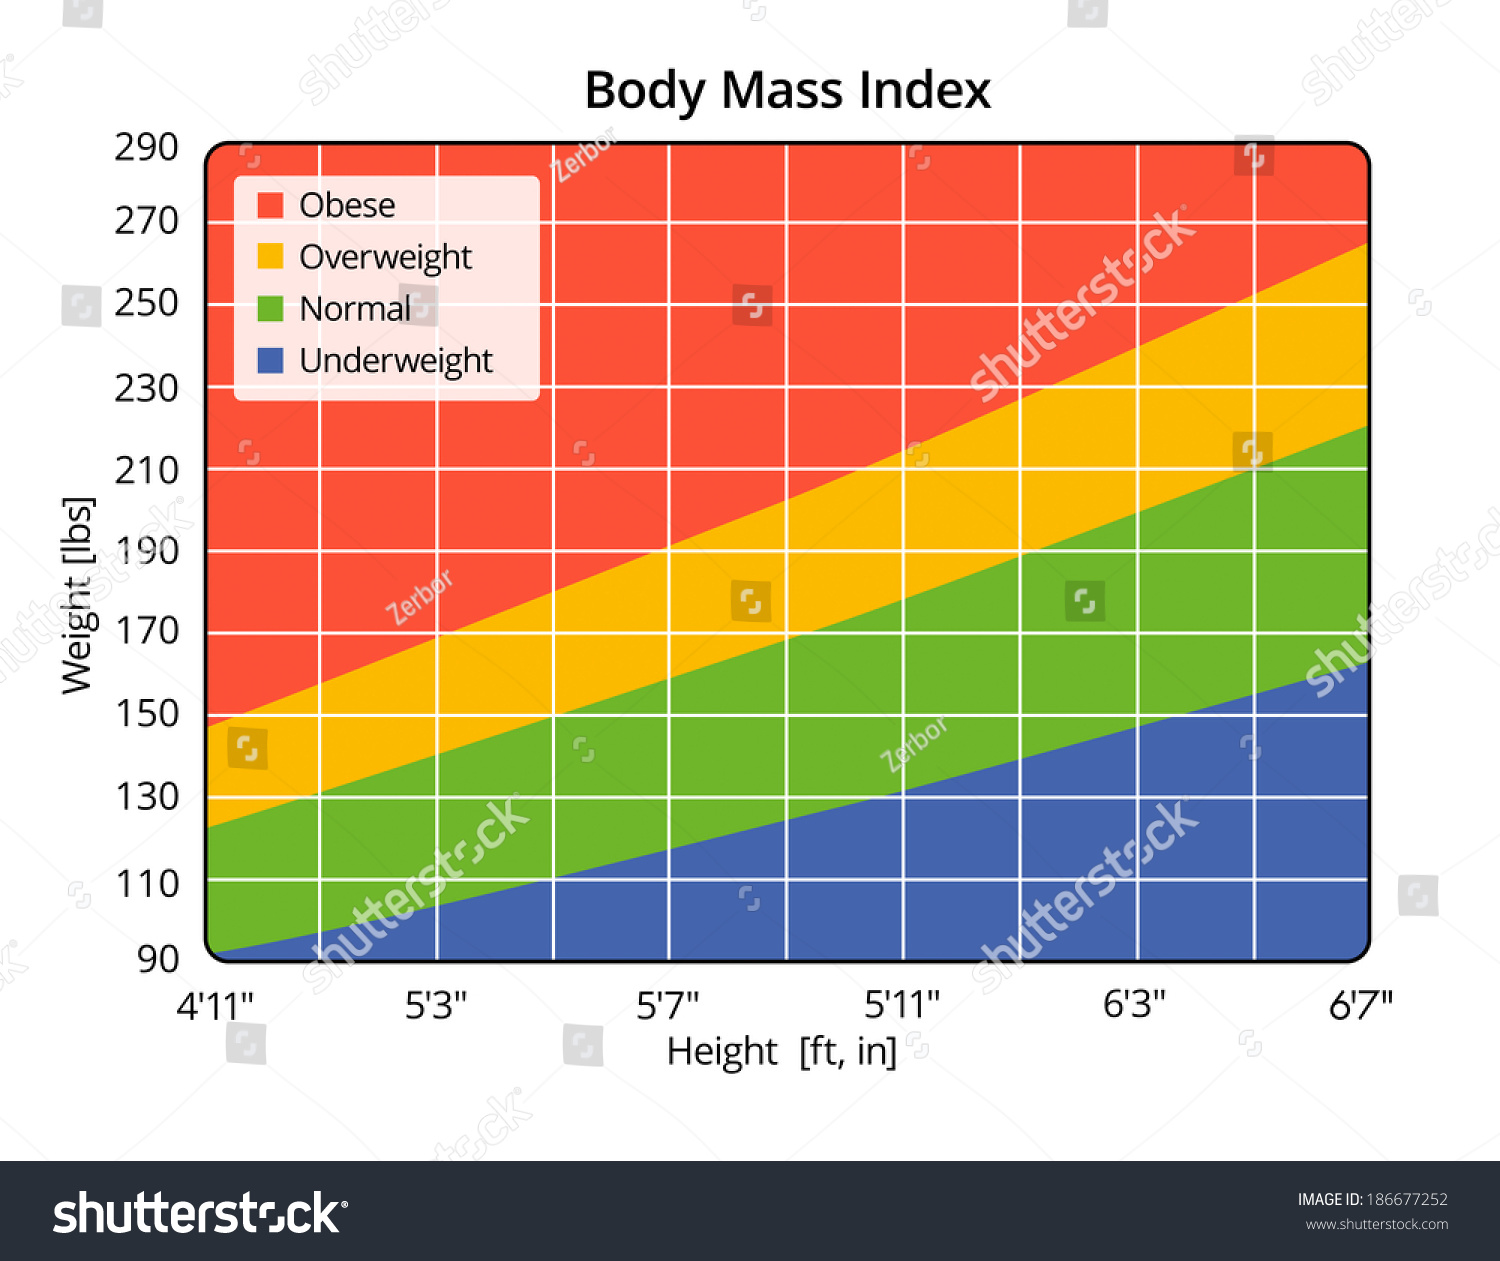 Body Mass Index In Lbs And Ft In Stock Photo